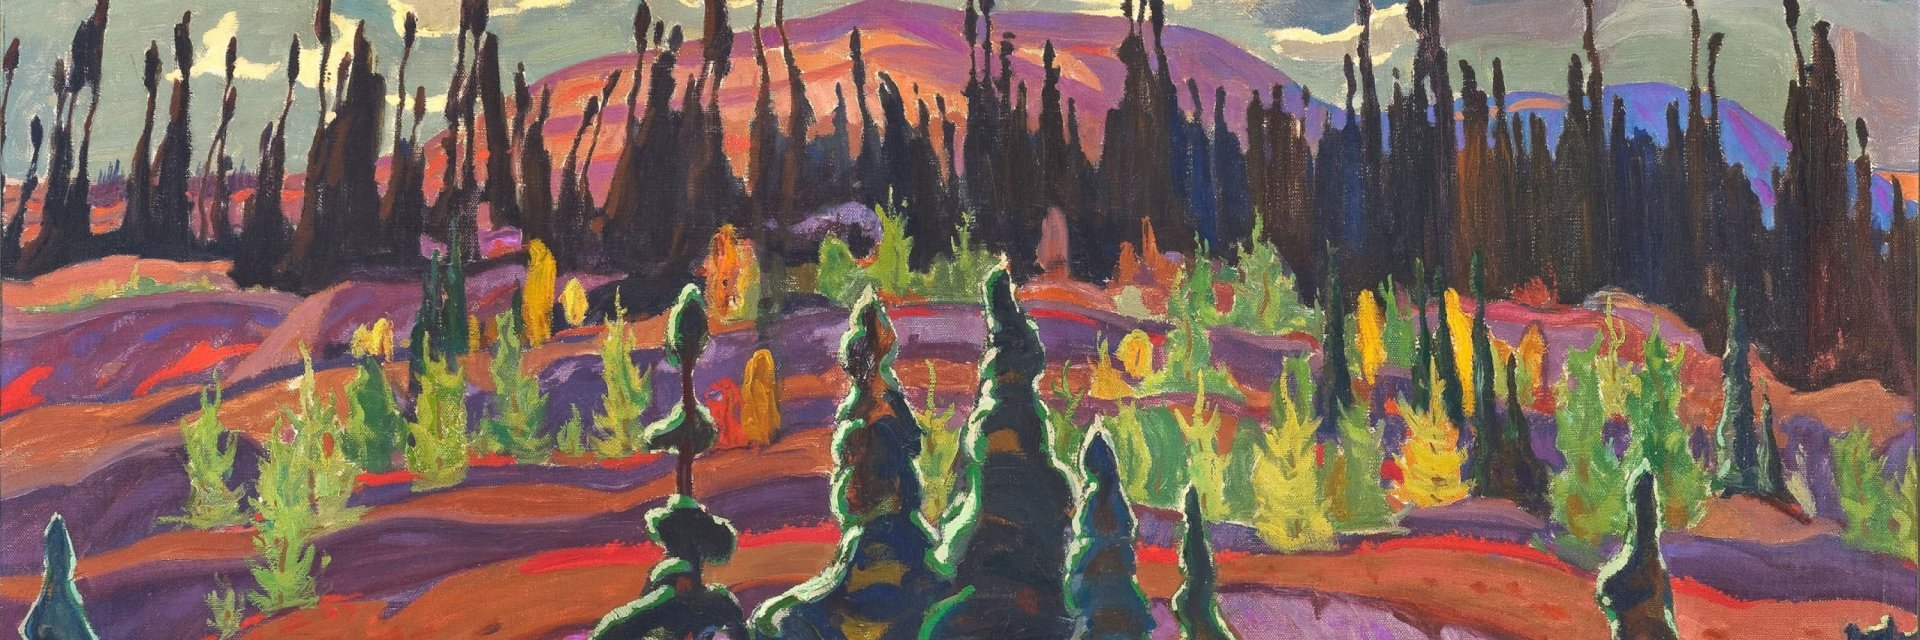 Kunsthal Rotterdam 'Magnetisch Noorden', A.Y. Jackson, lake Superior County, 1924, McMichael Canadian Art Collection